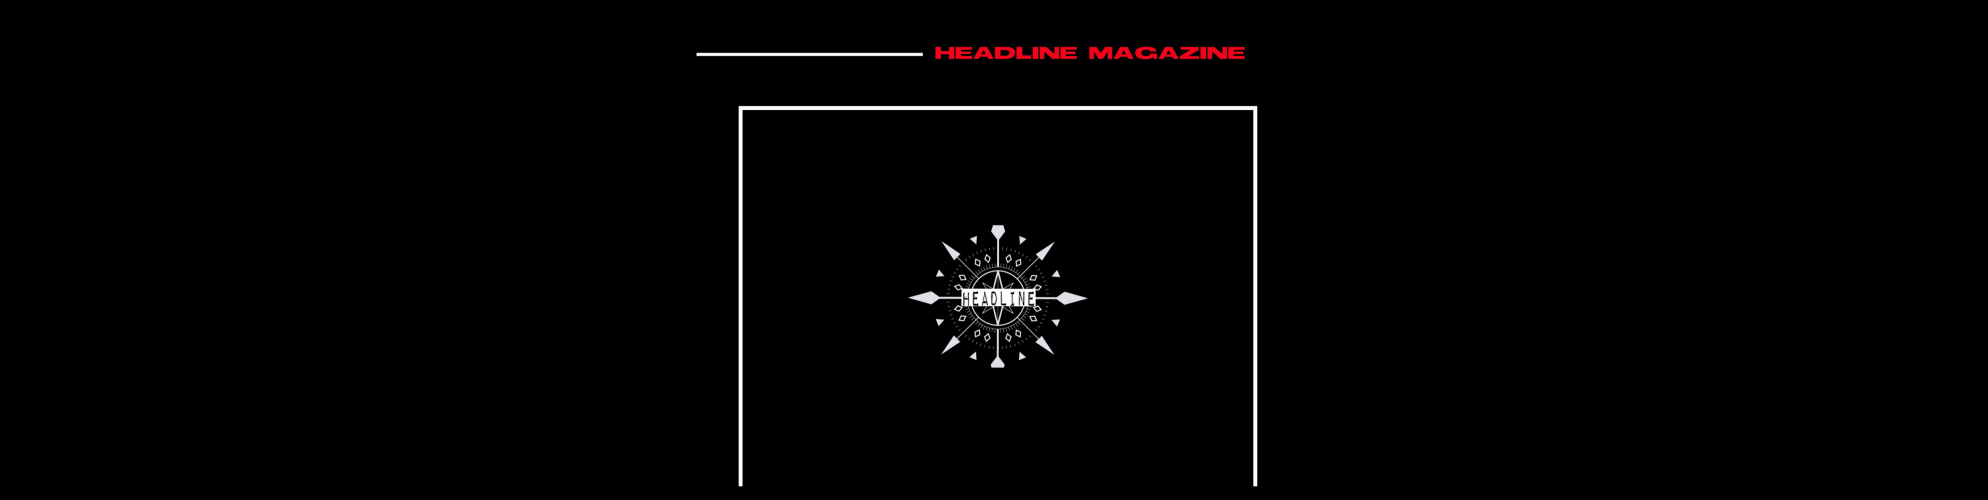 Headline Magazine